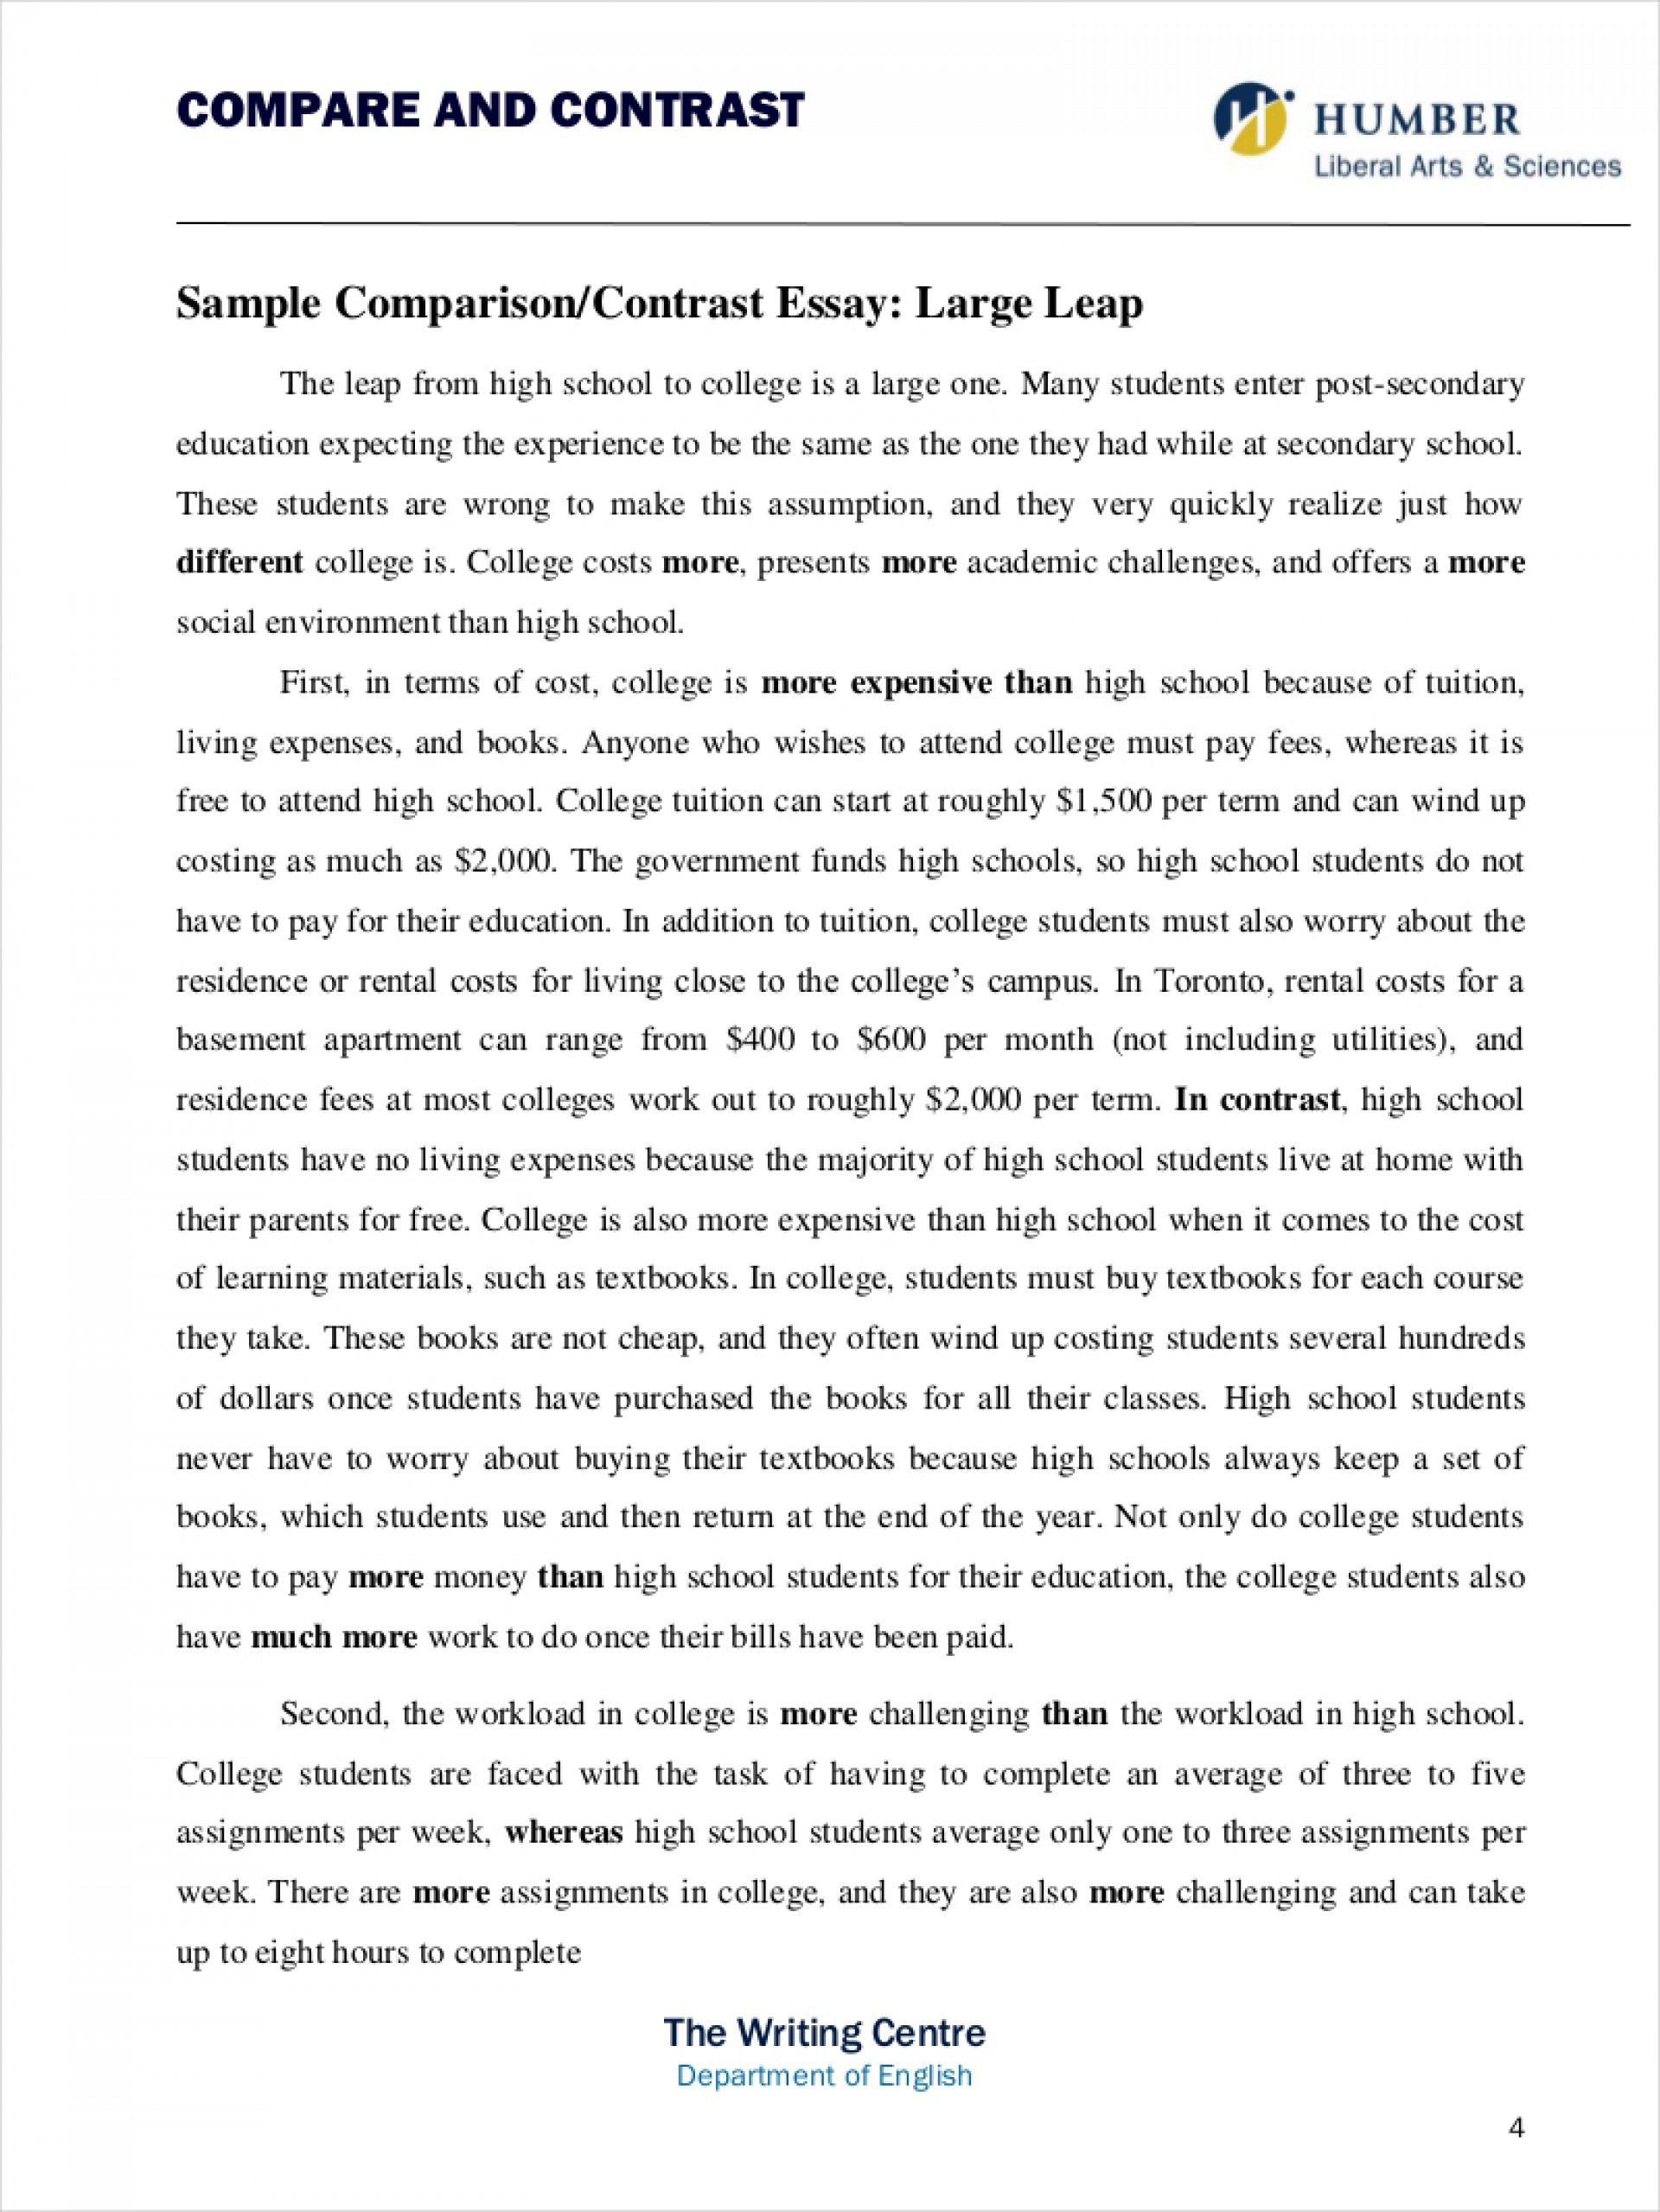 009 Comparison And Contrast Essay Comparative Samples Free Pdf Format Download Throughout Compare Examples Thesis Coles Thecolossus Co Within Ex 5th Grade 4th 6th 3rd High Awful Point-by-point Example 1920